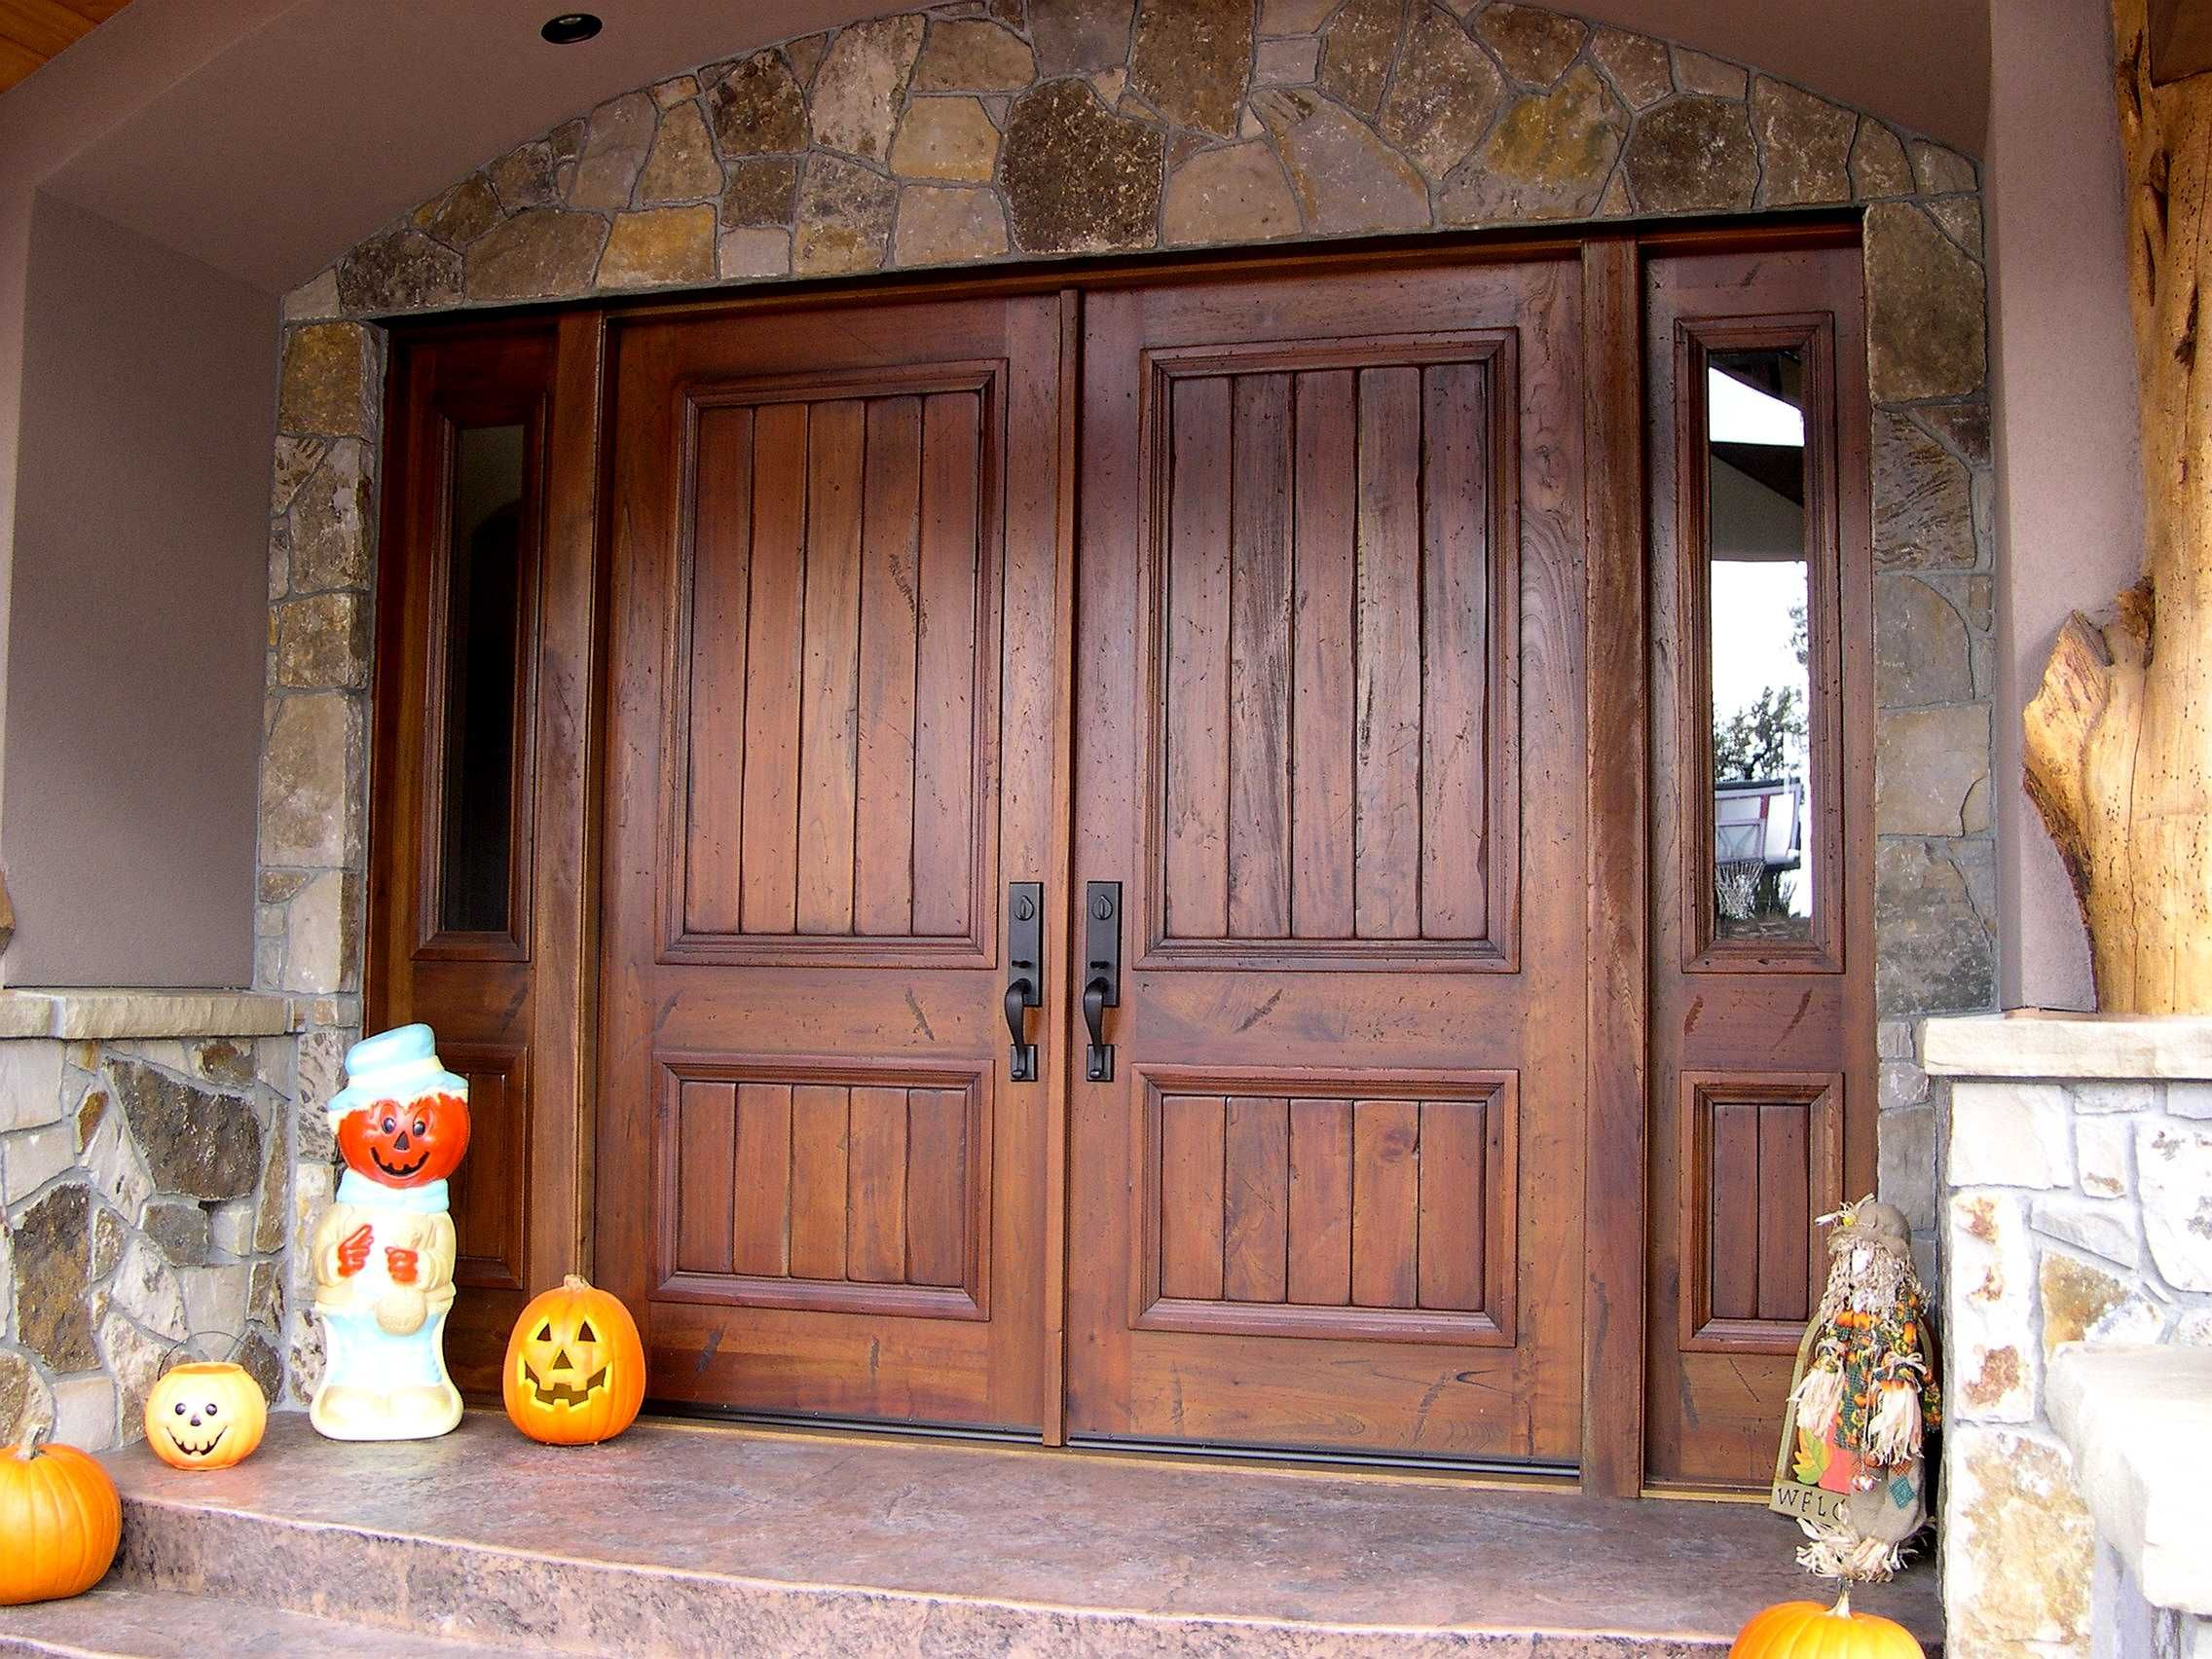 Rustic french doors interior photo 6 rusticos antiguos exterior artist studio door double rustic exterior entrance door with solid dark varnished finishing design eventshaper